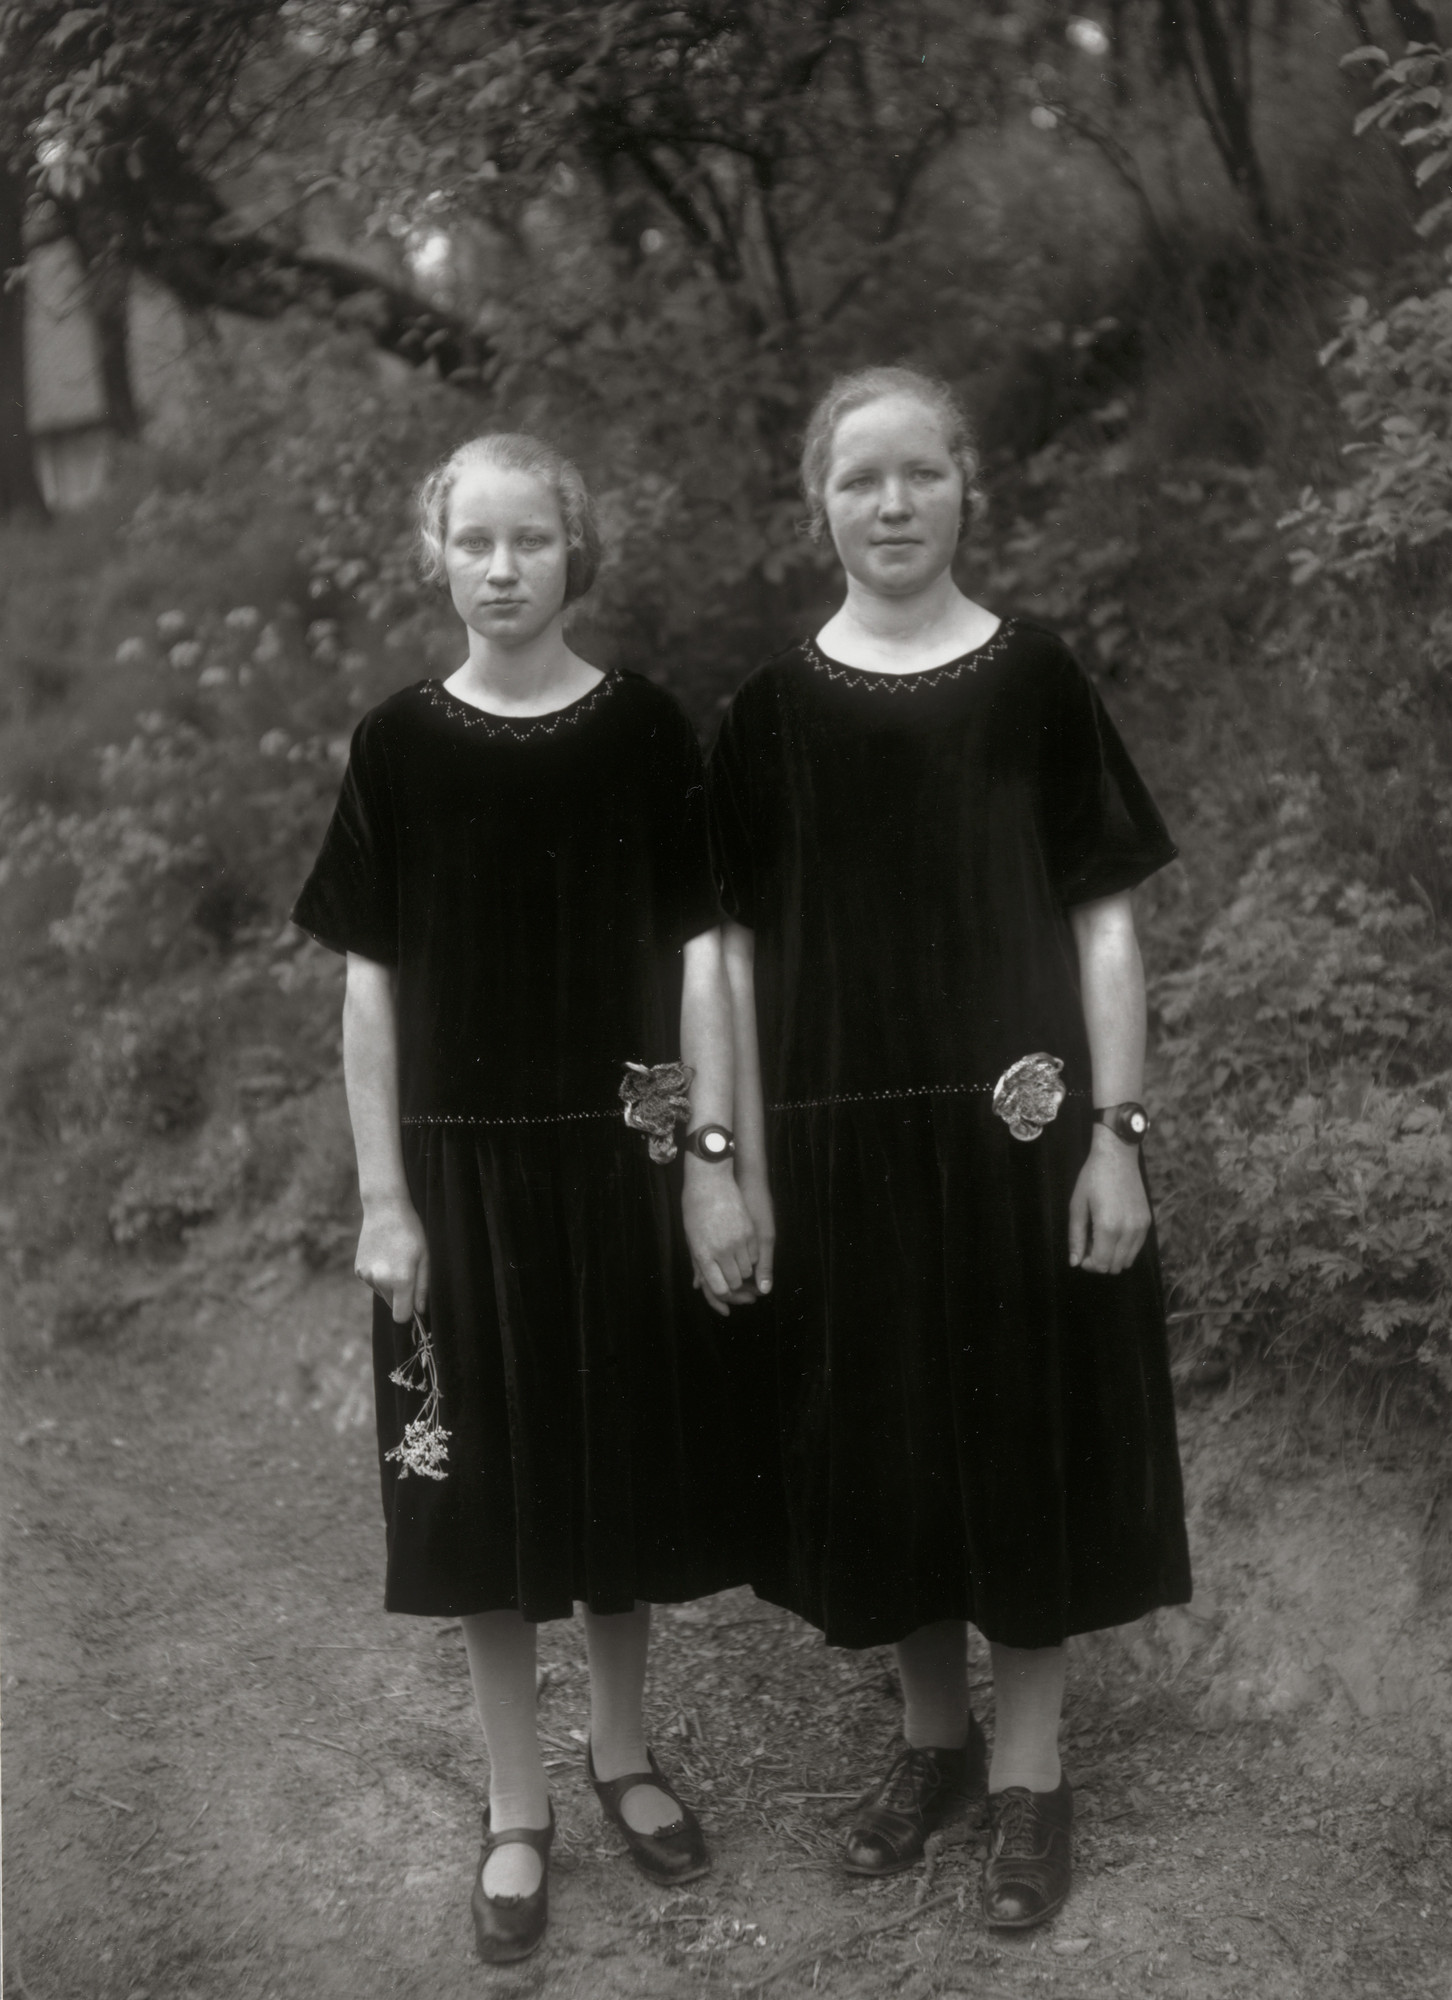 August Sander. Country Girls. 1925